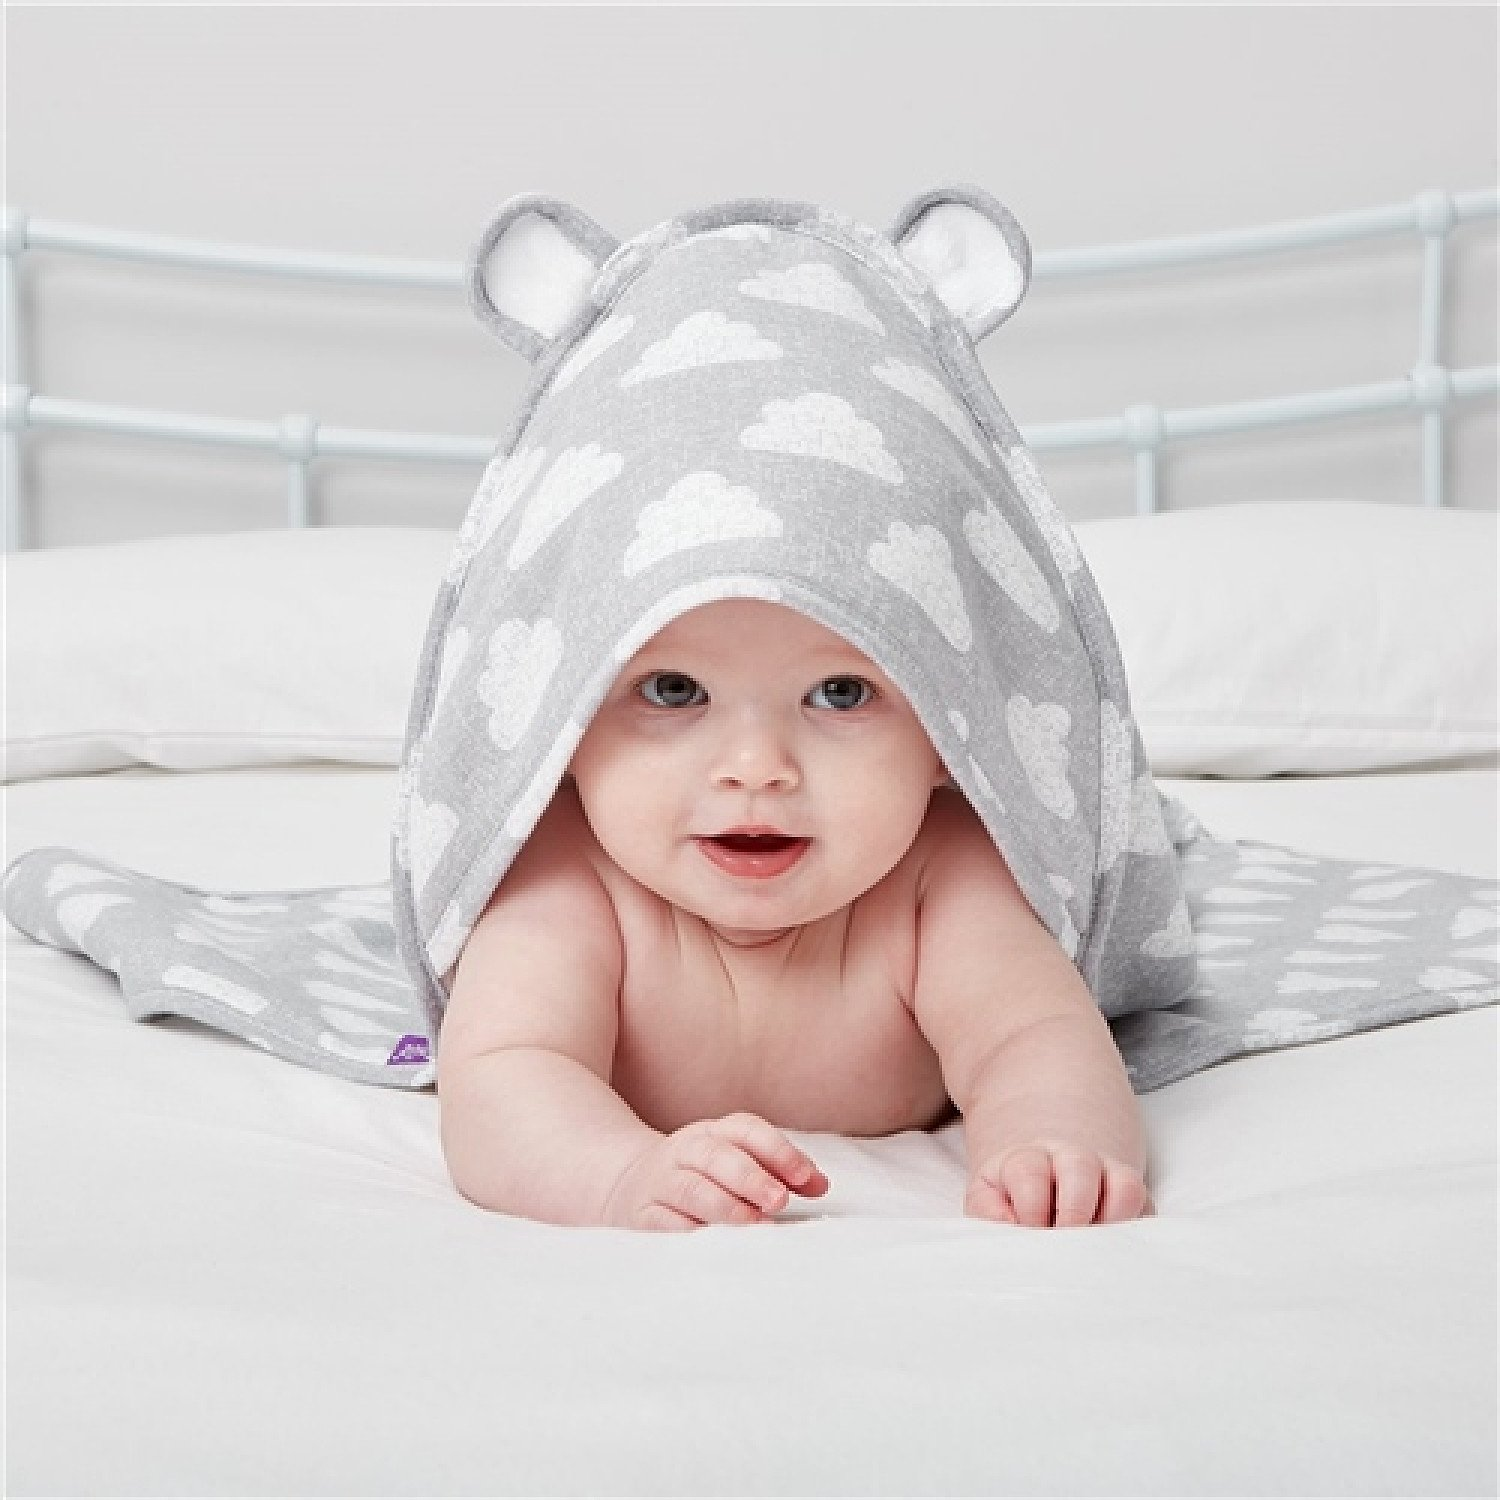 Up to 30% Off Baby Bath Time Accessories